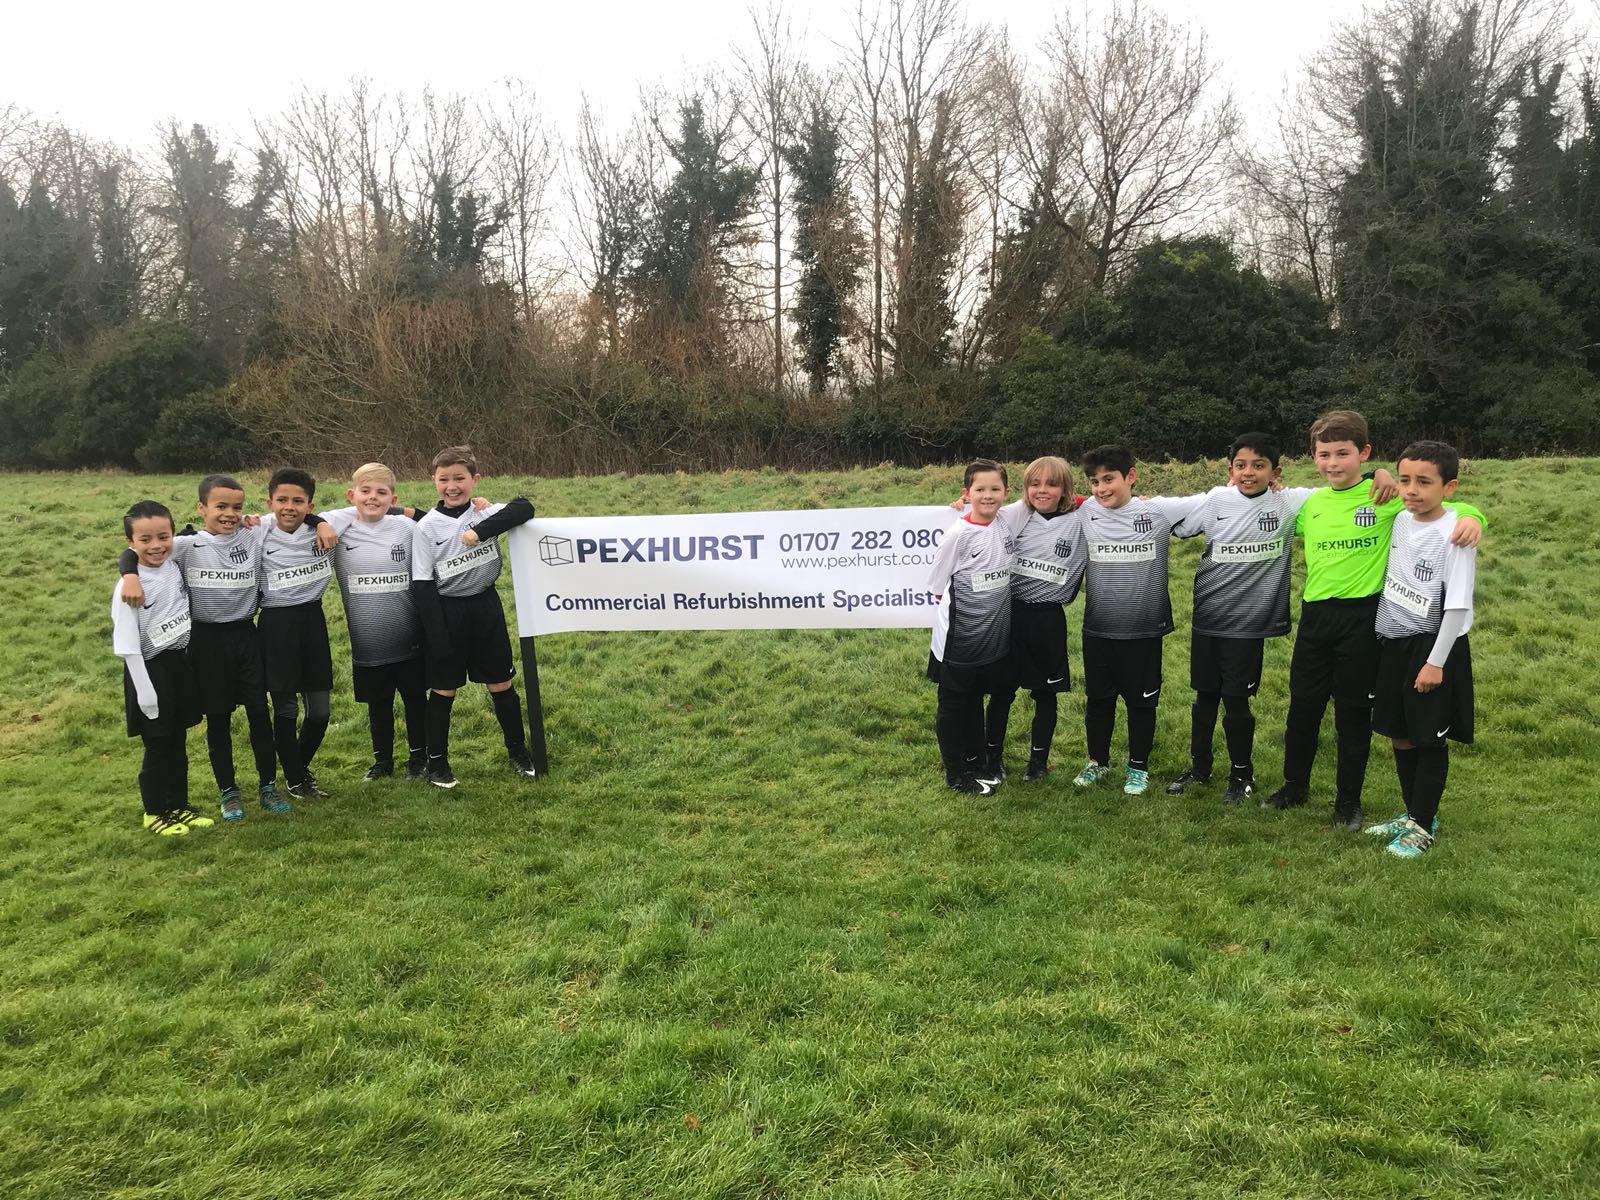 http://www.pexhurst.co.uk/wp-content/uploads/2018/01/Pymmes-SFA-Team-photo.jpg